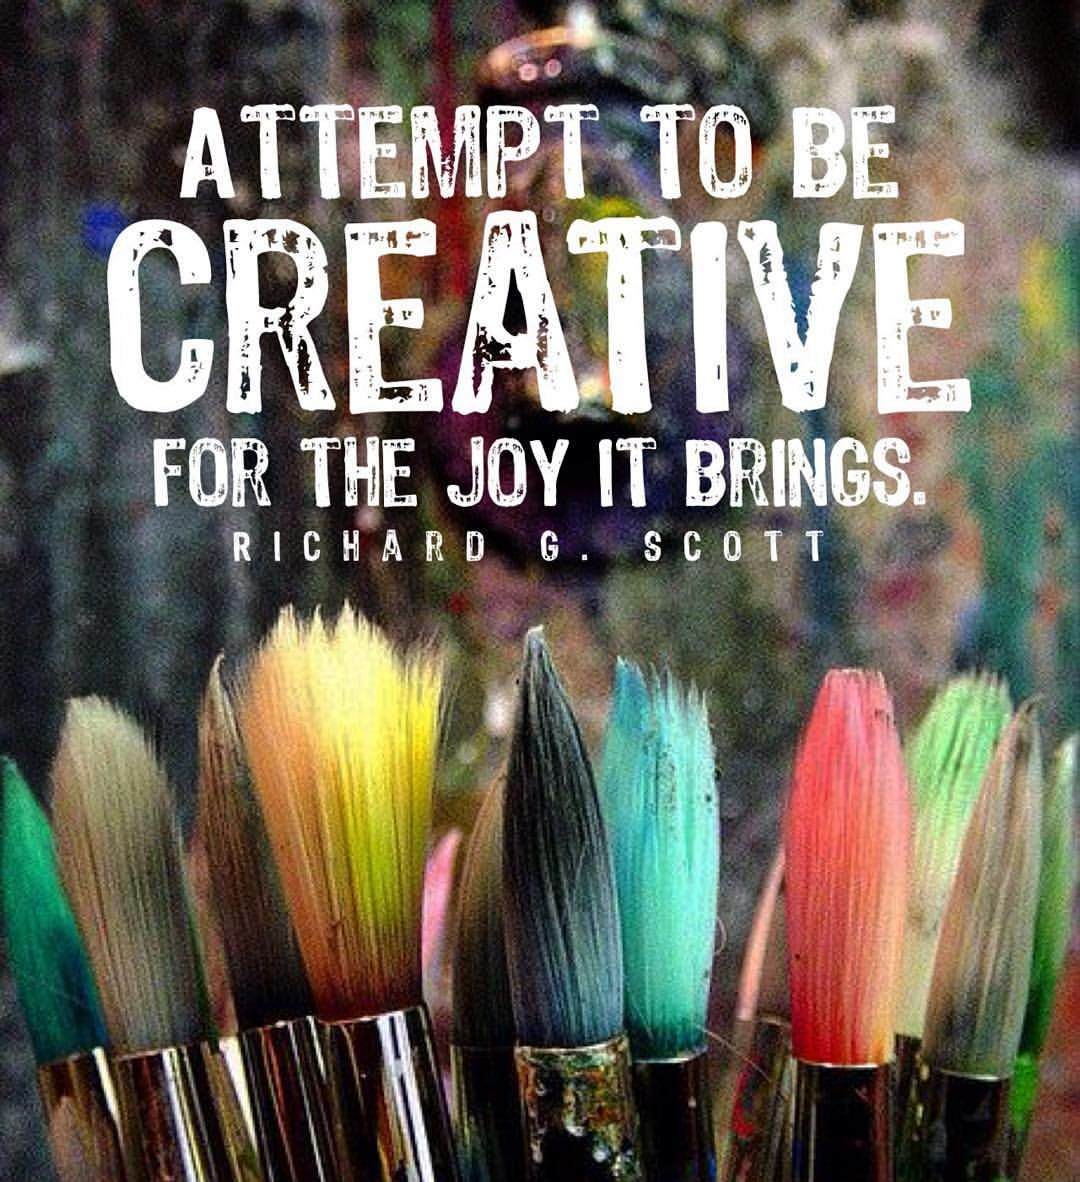 """Attempt to be creative for the joy it brings"" - Elder Richard G. Scott  I really love this quote ❤️ Like my last post :) #lds #mormon #christian #helaman #armyofhelaman #sharegoodness #embark #creative #elderscott"